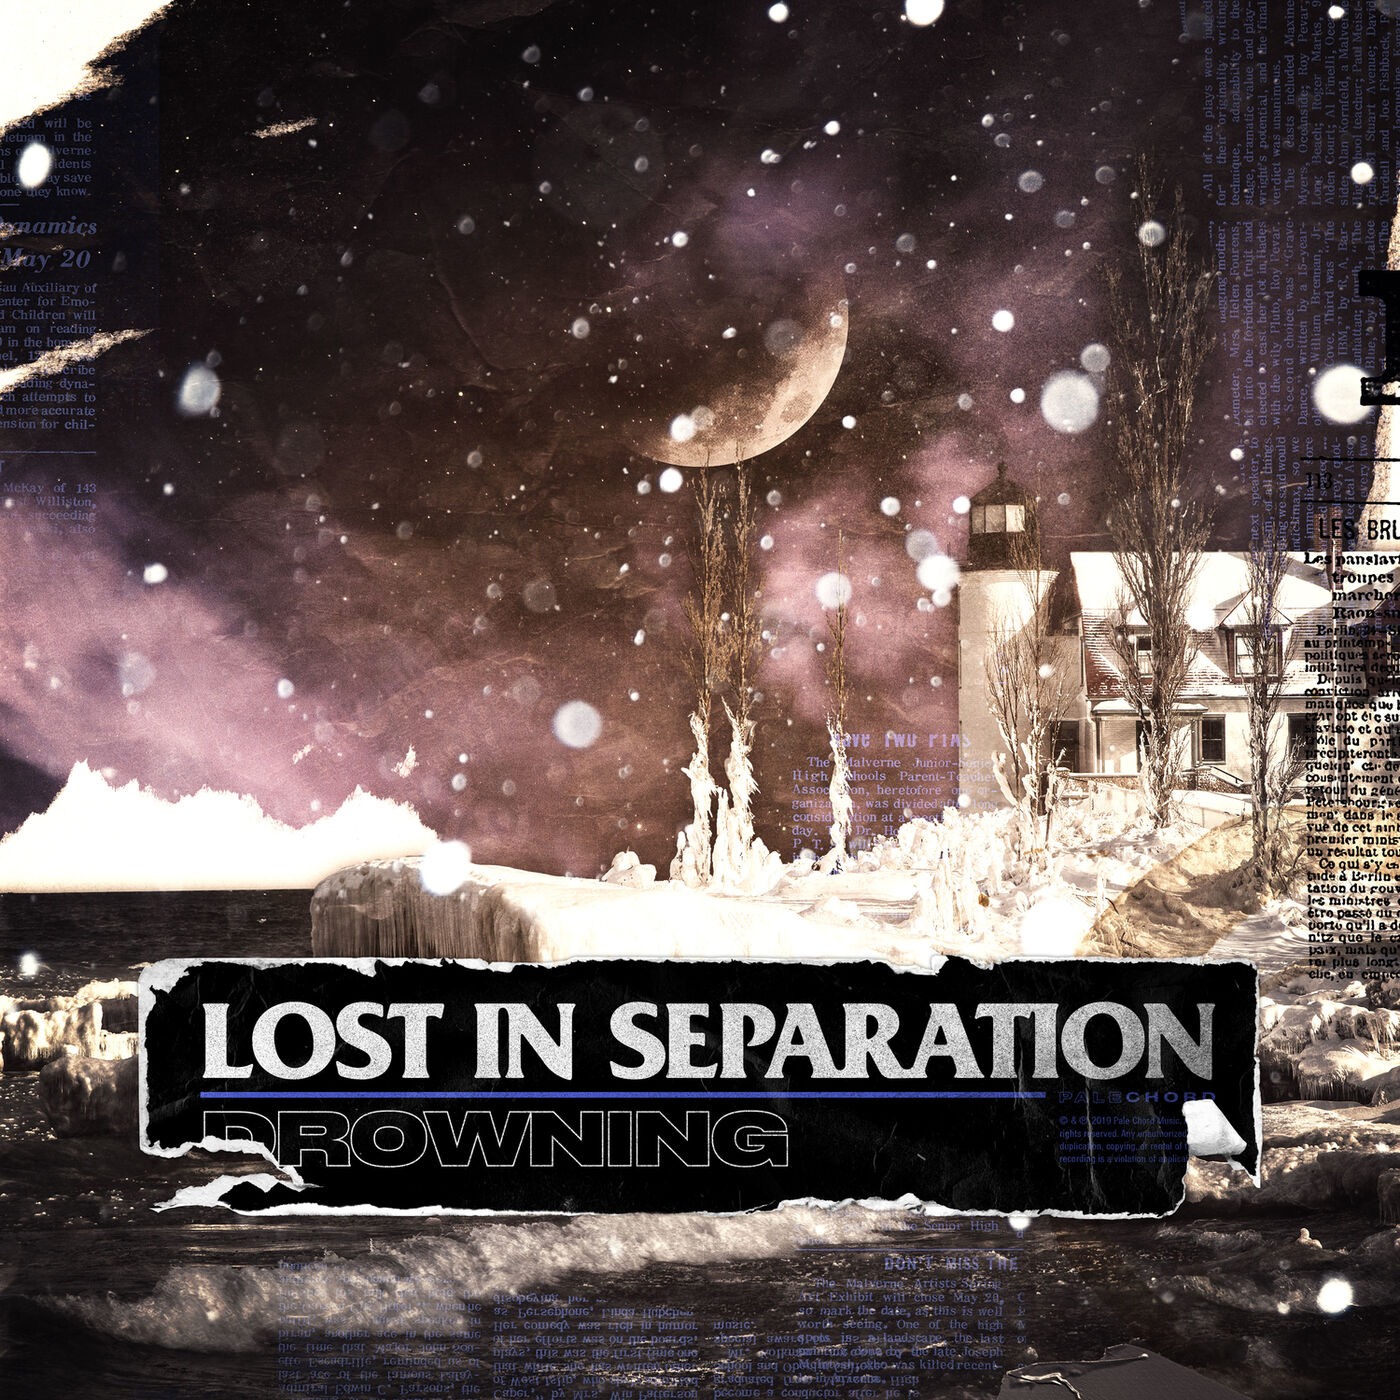 Lost in Separation - Drowning [single] (2019)